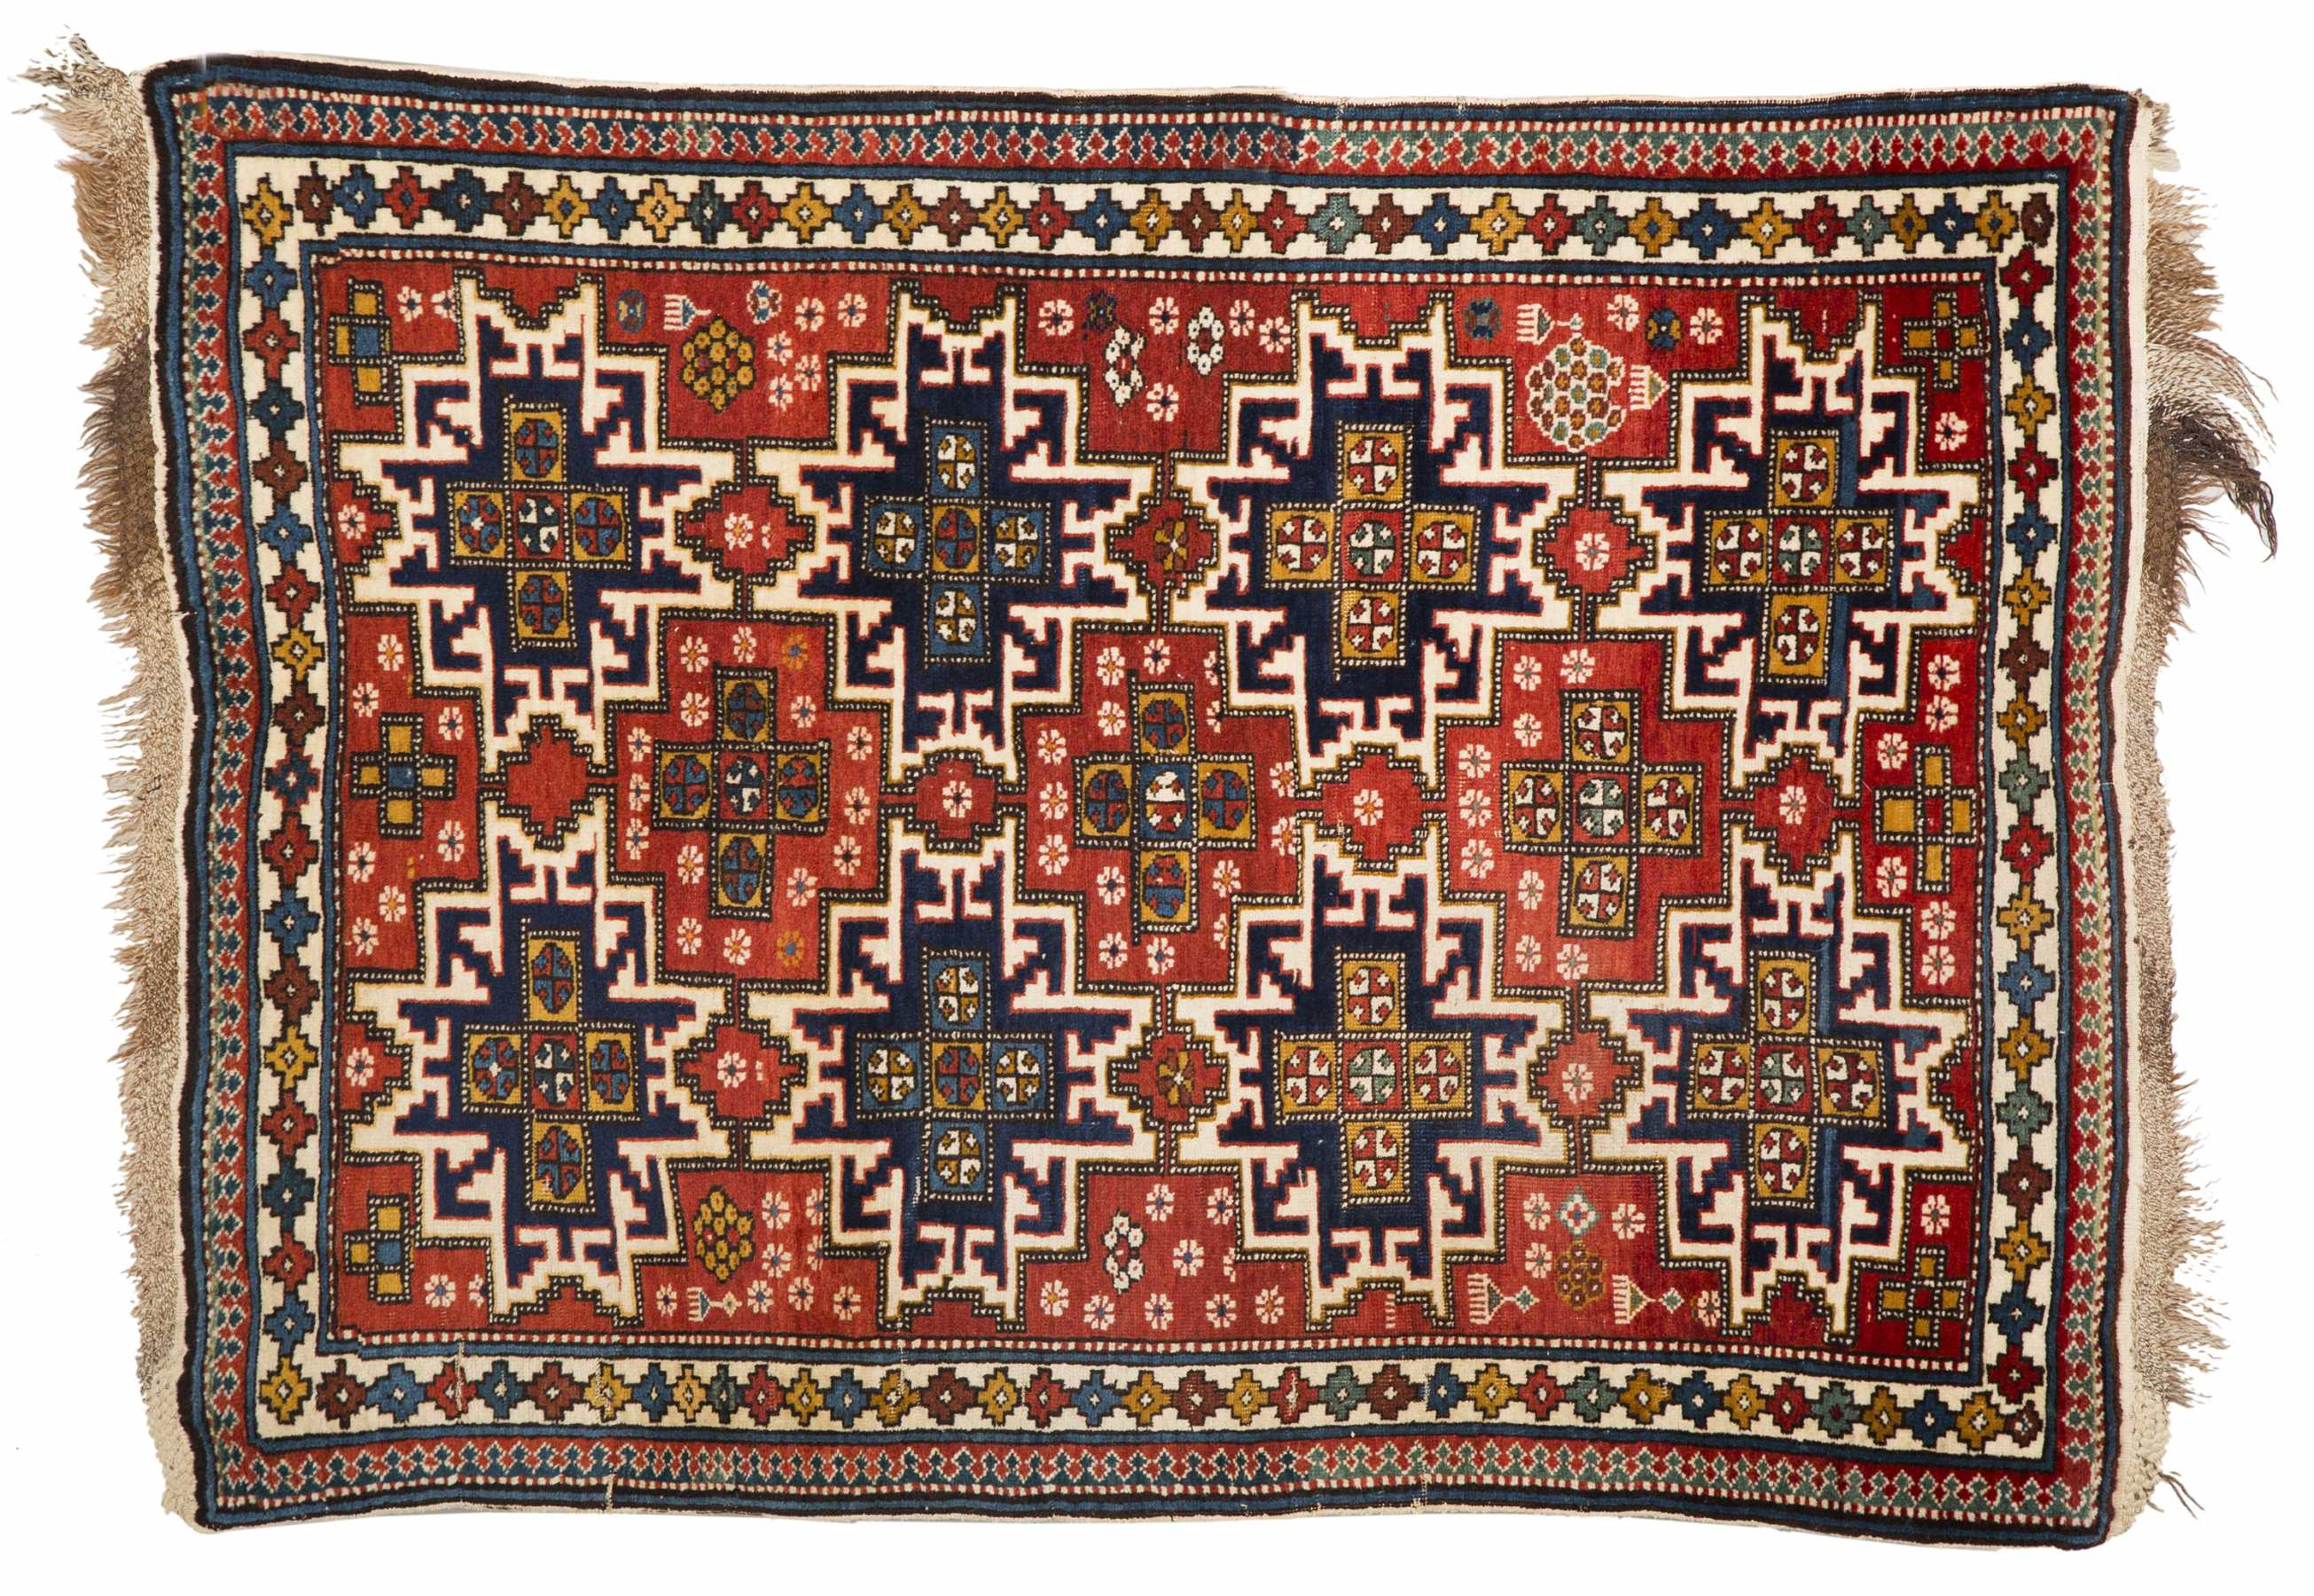 Lesghi Star Scatter Rug Depicting 4 Pairs Of Stars On A Red Ground